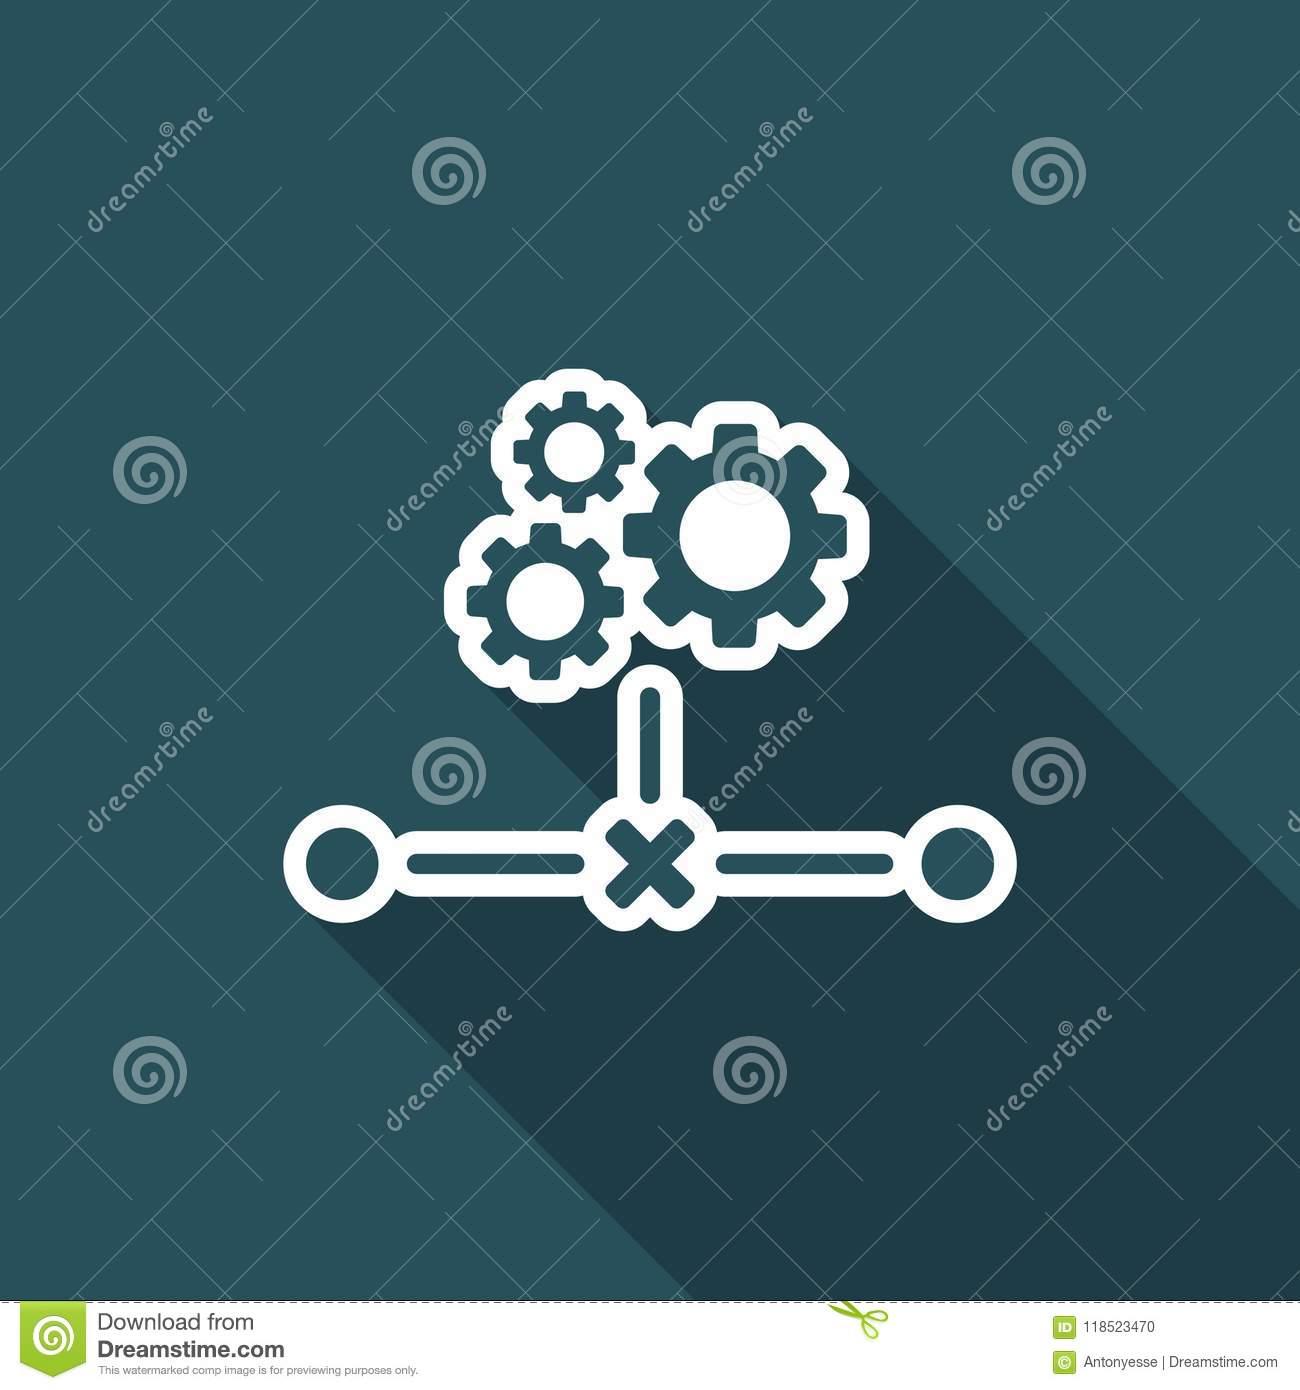 Broken Network Connection Icon Stock Vector - Illustration of ...